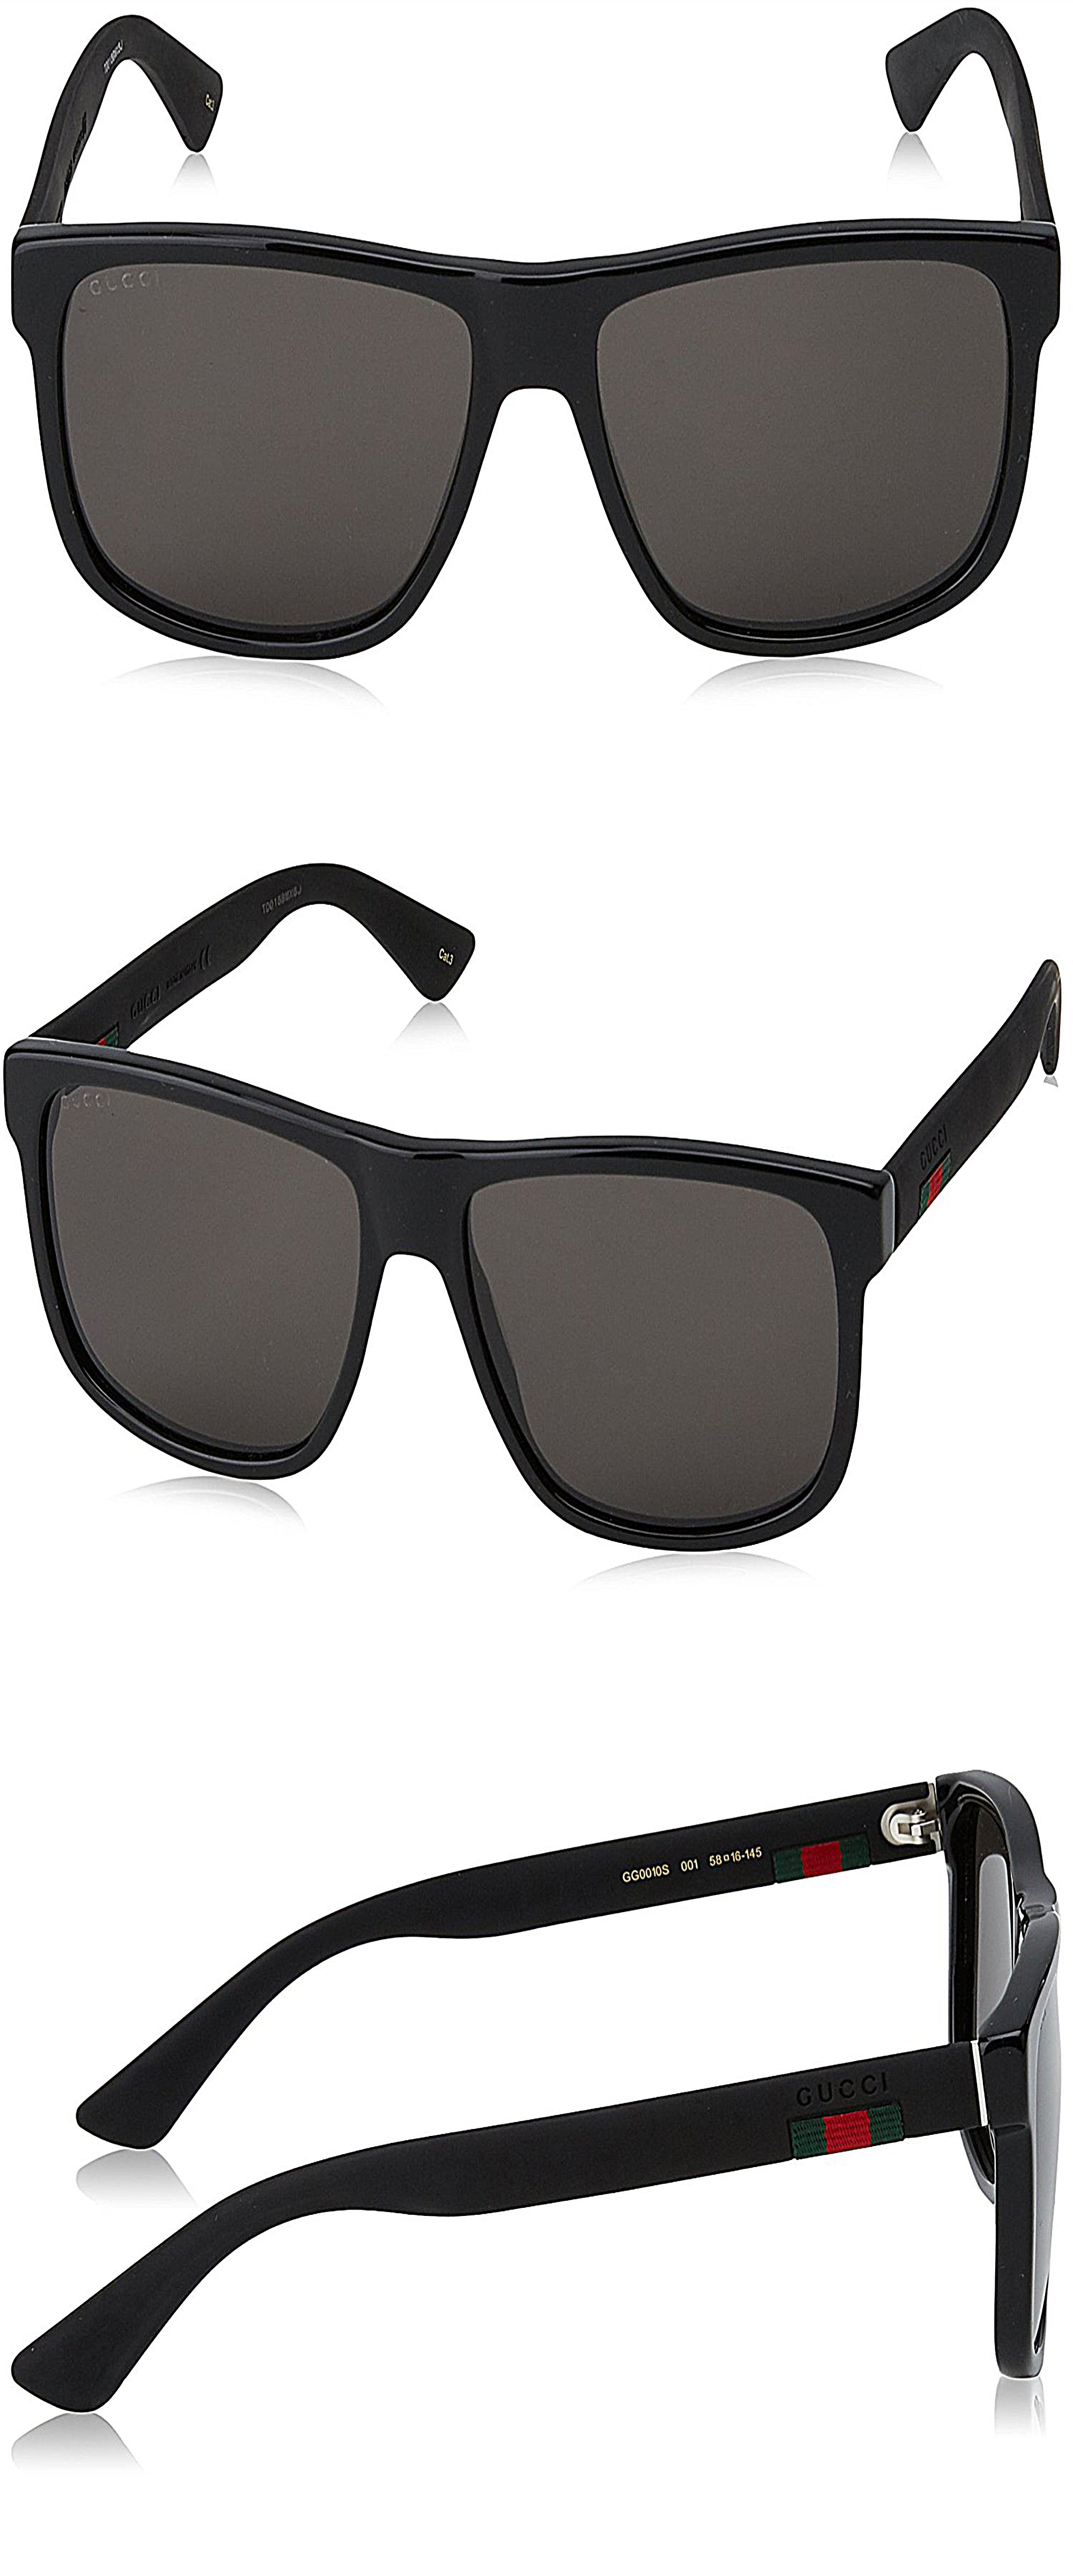 36956a20692e Gucci GG 0010 S- 001 BLACK/GREY Sunglasses mens sunglasses, sunglasses for  men